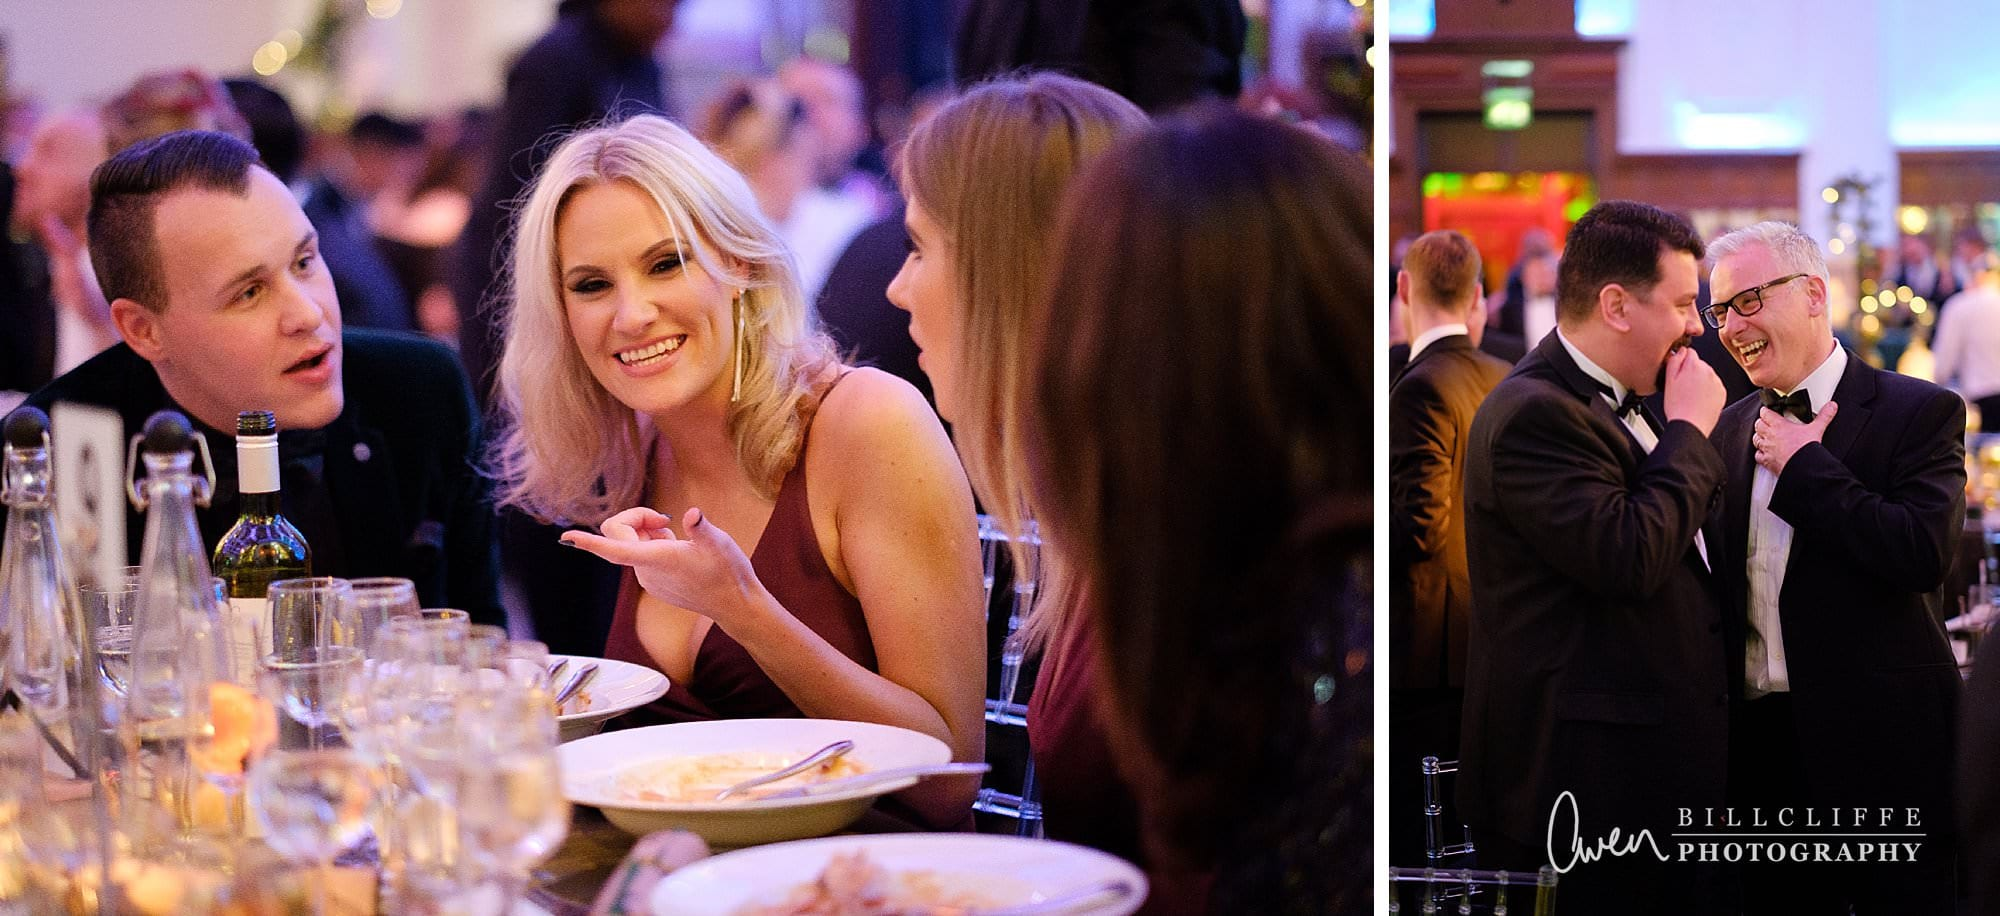 london event photographer 8 northumberland avenue mh 014 - A Christmas Party at 8 Northumberland